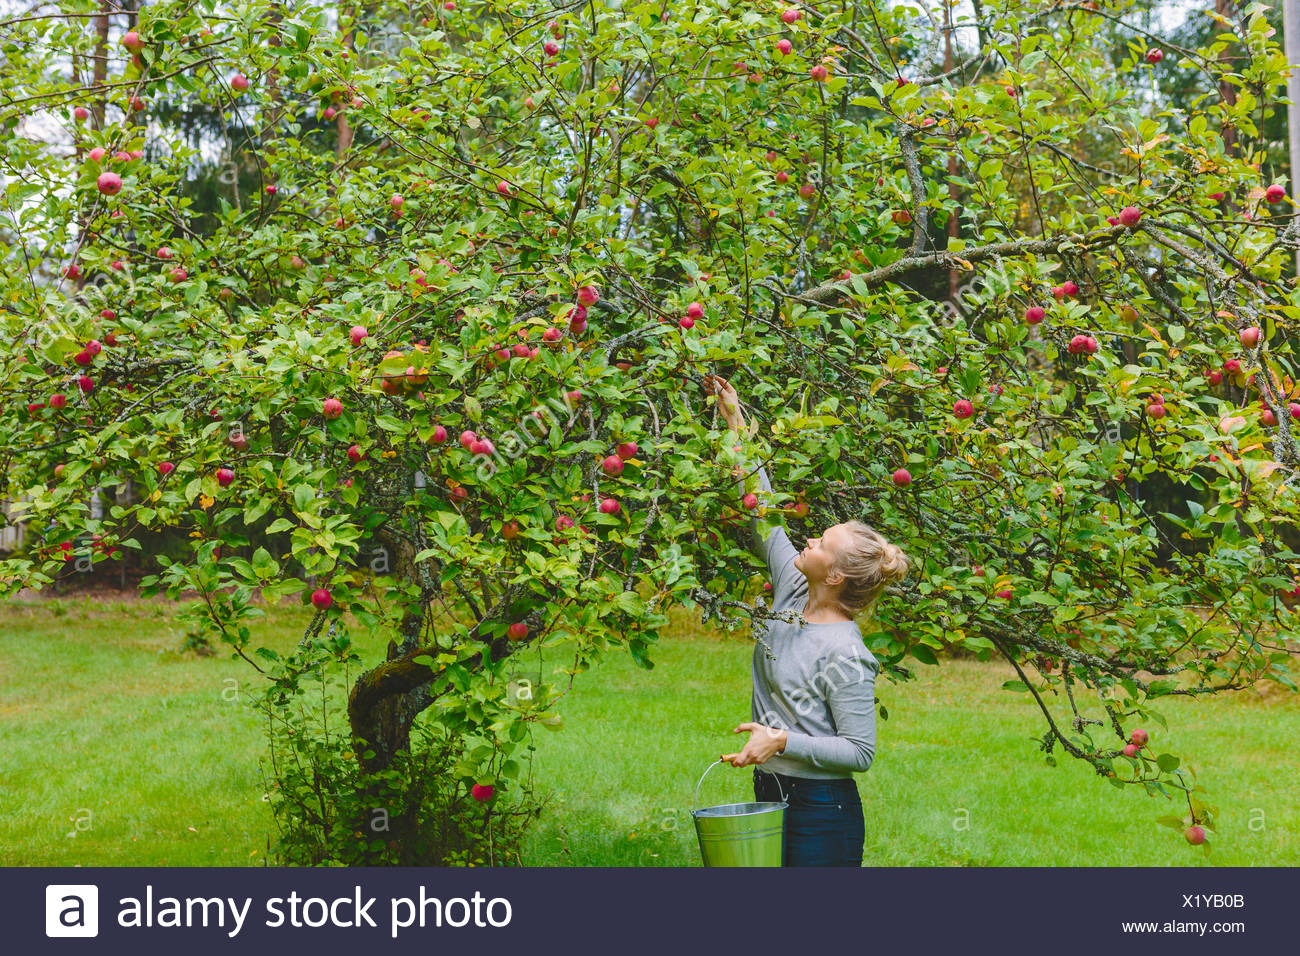 Finland, Uusimaa, Sipoo, Woman picking apples from tree - Stock Image